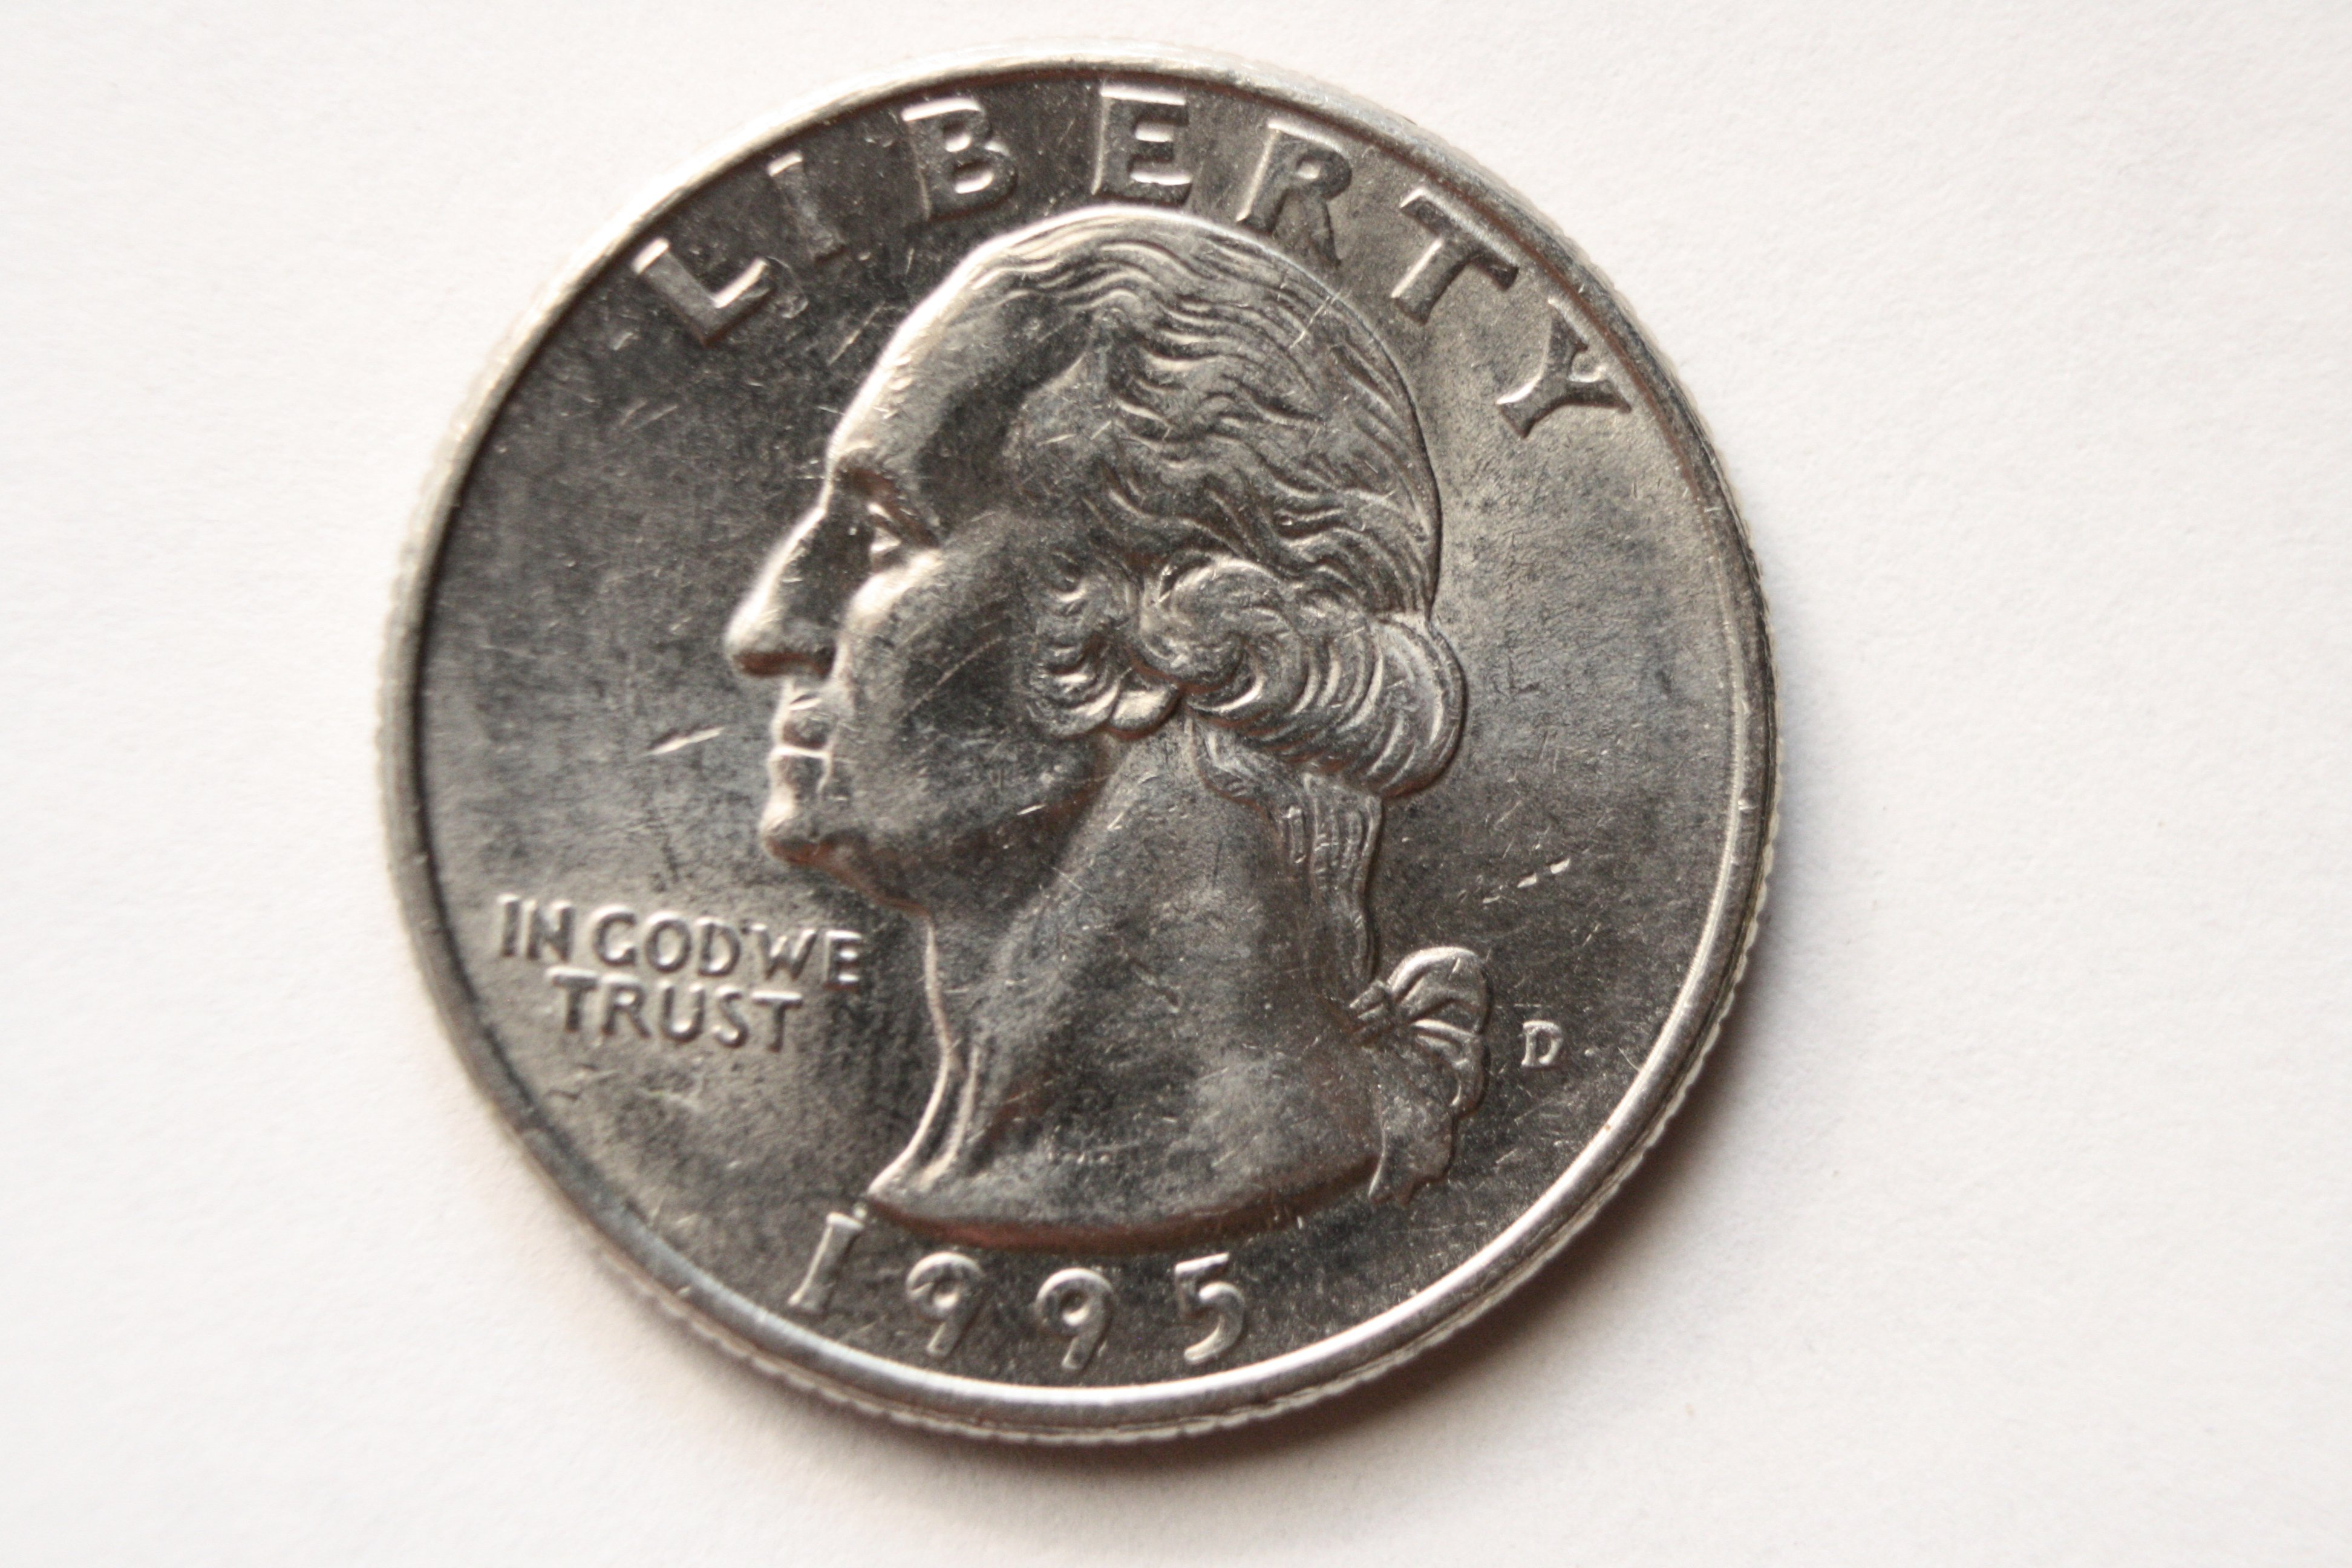 https://i0.wp.com/www.photos-public-domain.com/wp-content/uploads/2012/09/us-quarter-dollar-coin-front.jpg